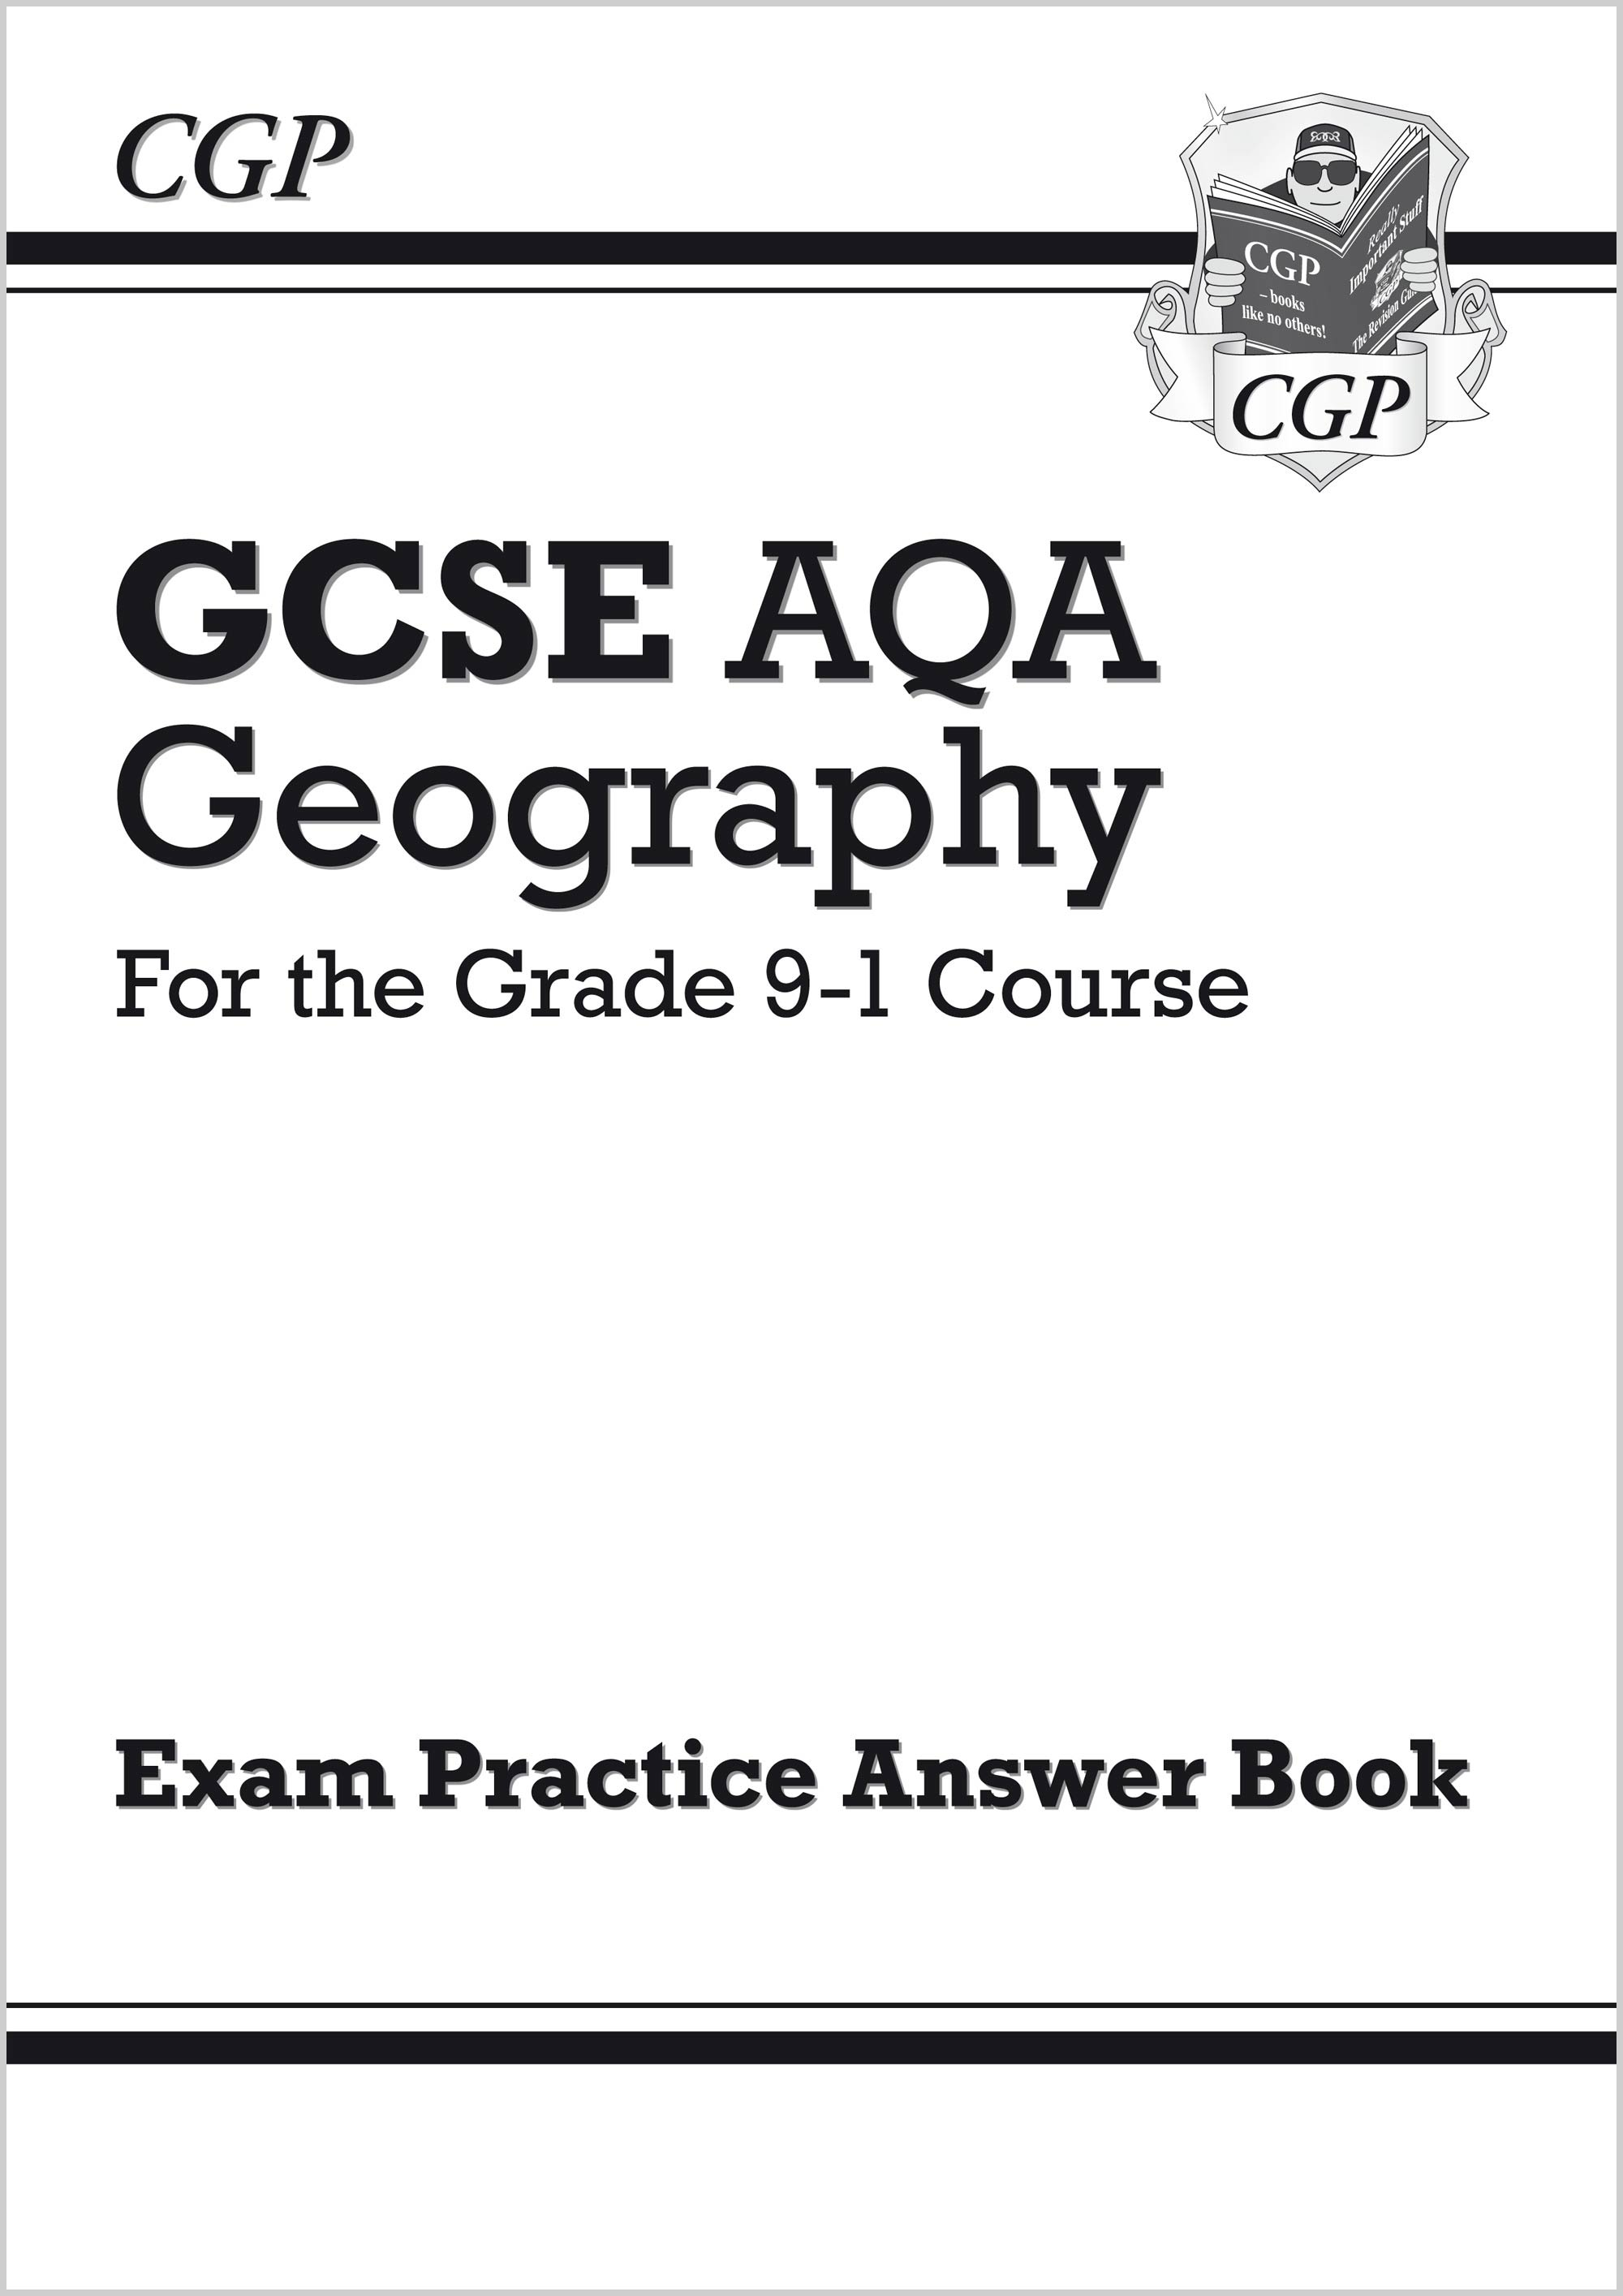 GAQA41 - Grade 9-1 GCSE Geography AQA Answers (for Workbook)